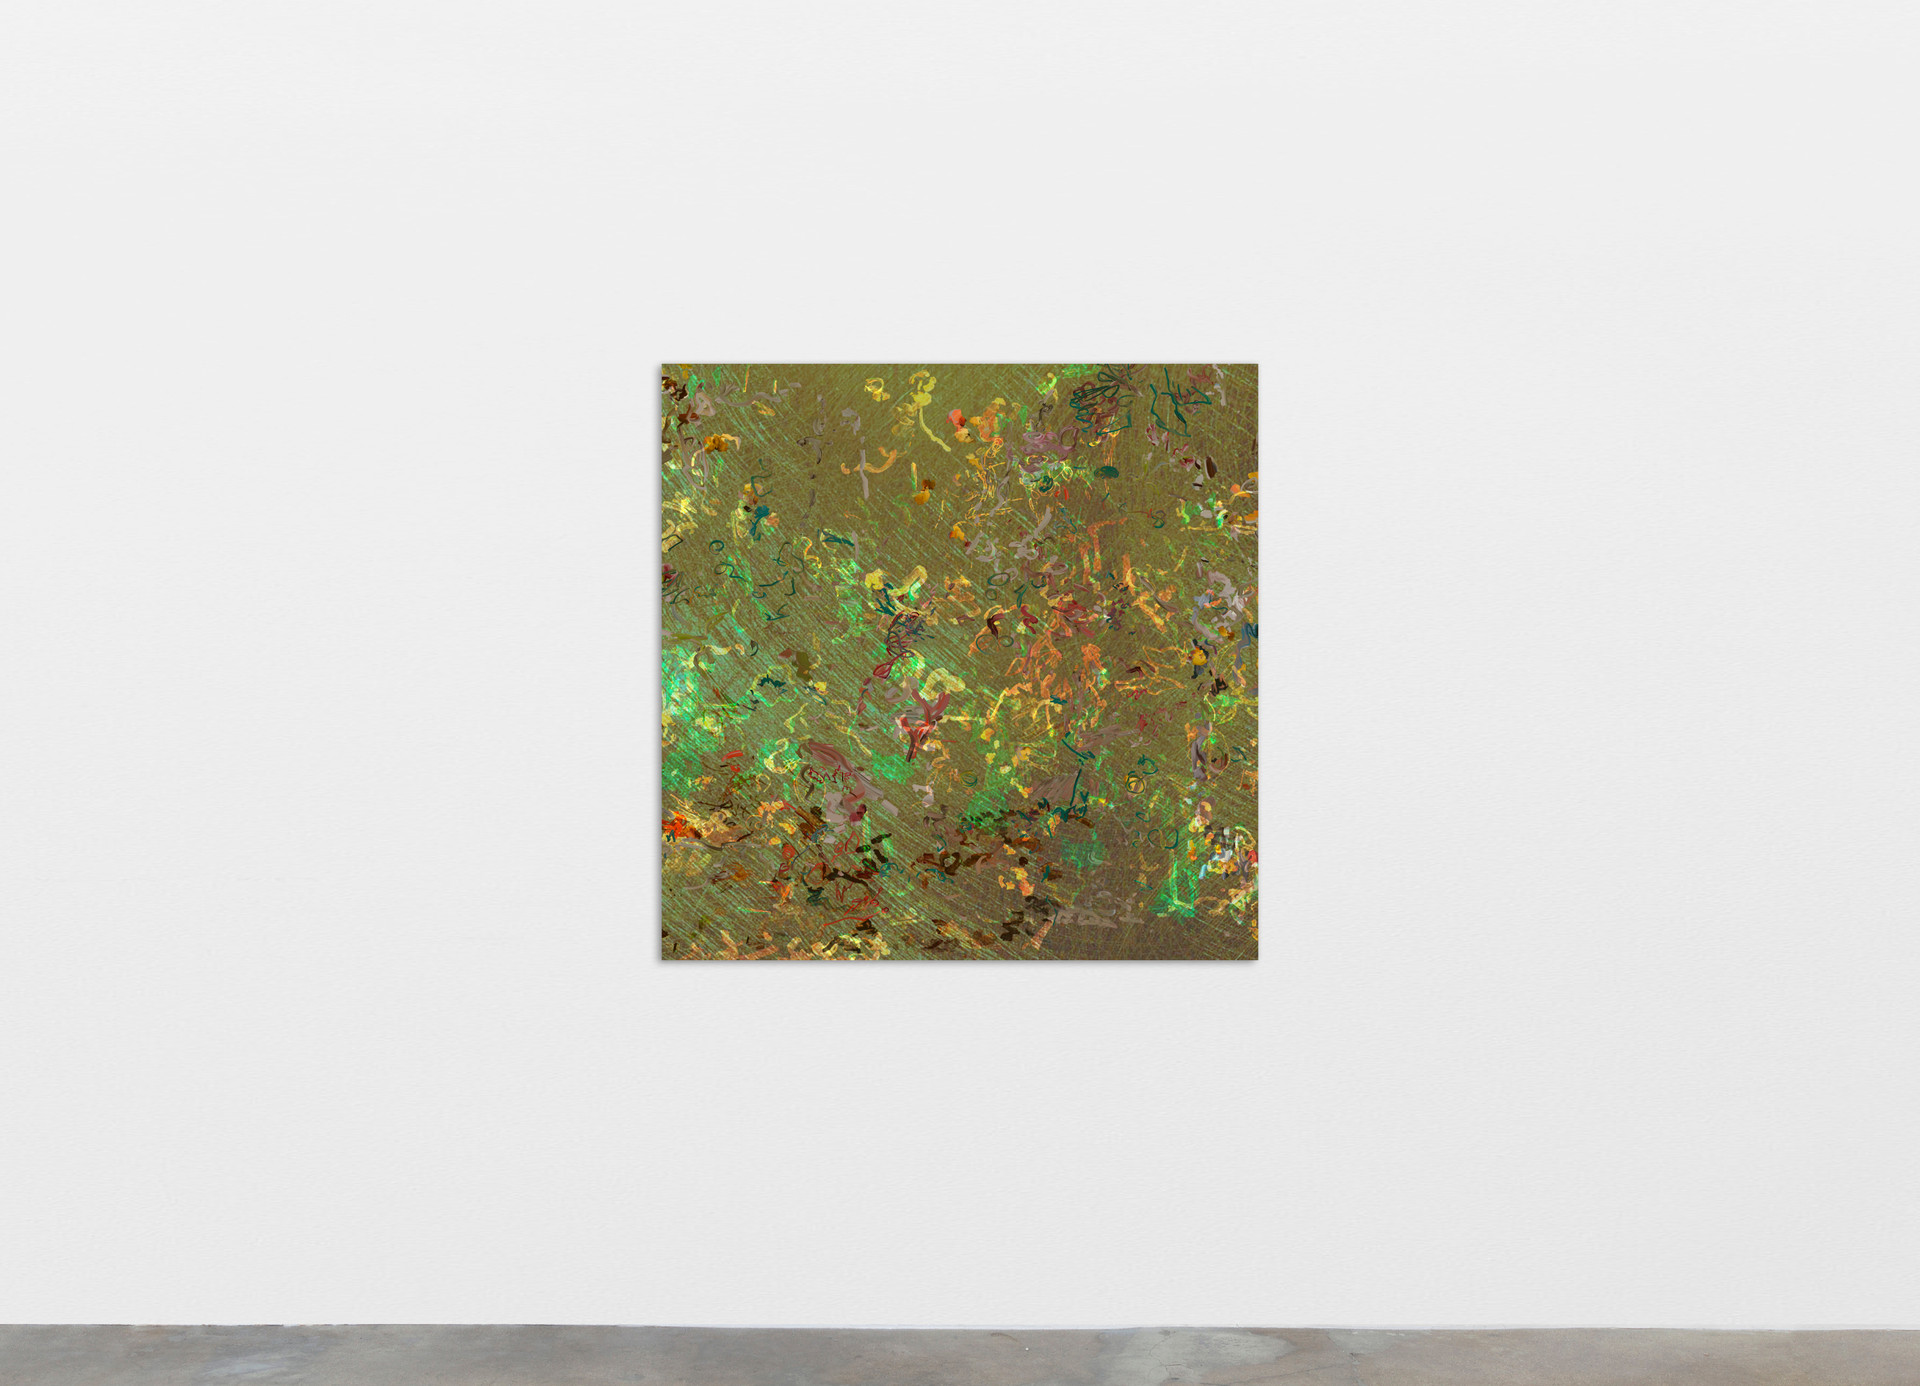 """Petra Cortright liz's horoscope page_lustylady """"madonna in bondage"""", 2020 Digital painting on anodized aluminum 83.82 x 83.82 cm 33 x 33 in"""